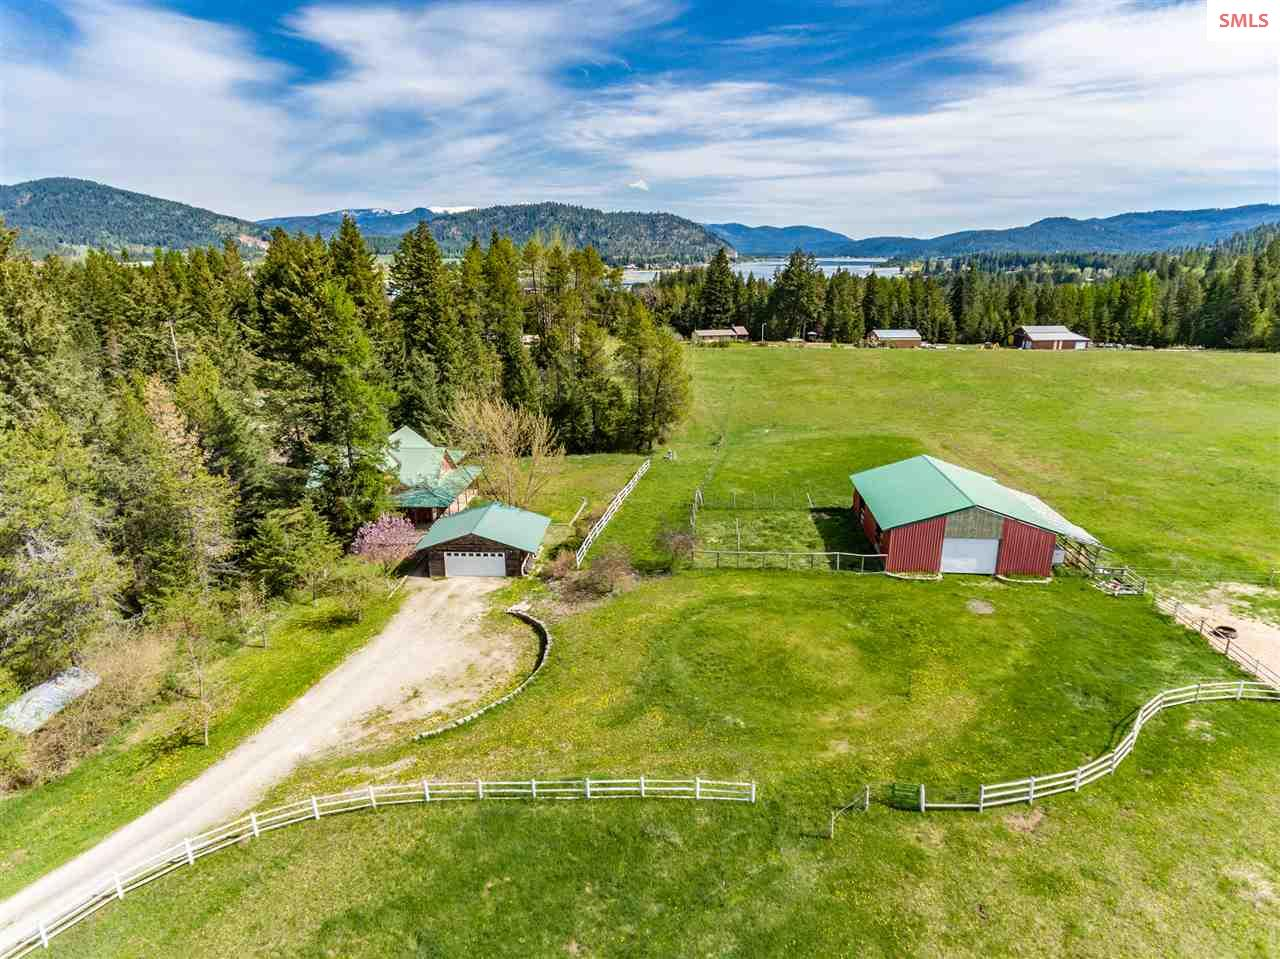 LARGE 6BR/4BA HOME SITUATED ON 30 ACRES WITH DETACHED GARAGE AND 60X60 BARN SETUP FOR HORSES! 3,960 sq ft home features TWO main floor master suites, office, huge family room, large bonus room, granite in kitchen and so much more! All usable 30 acres fenced and cross fenced with three pastures. 2 car detached garage with concrete floor and power. 60X60 Barn with power, four stalls, tack room & lean to. Beautiful property on county maintained road and nearly 2 miles to Jewel Lake and 7 miles to Round Lake State Park!